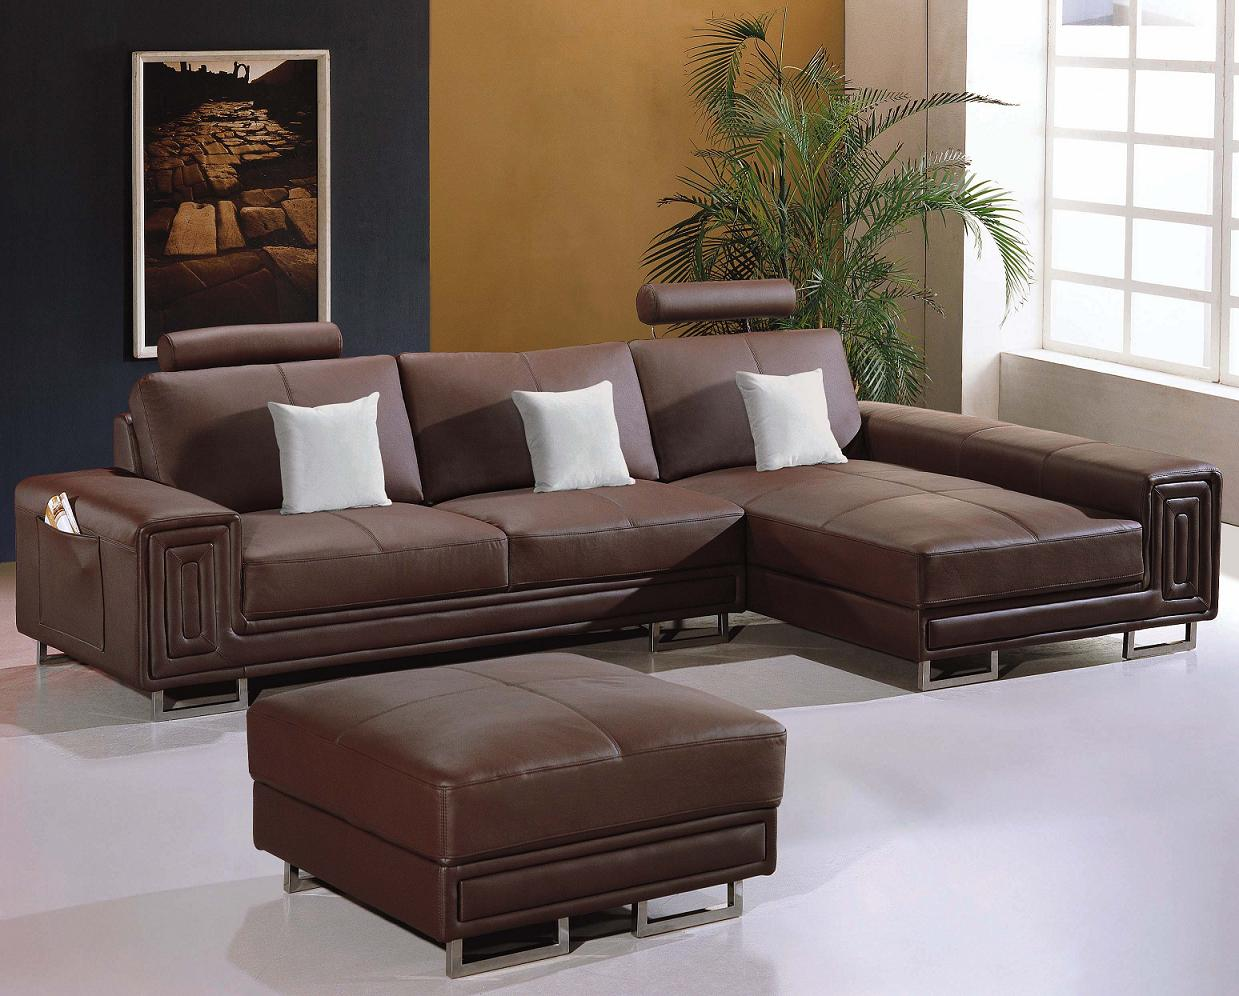 modern black leather sofa traditional wood trim t957  sectional design co